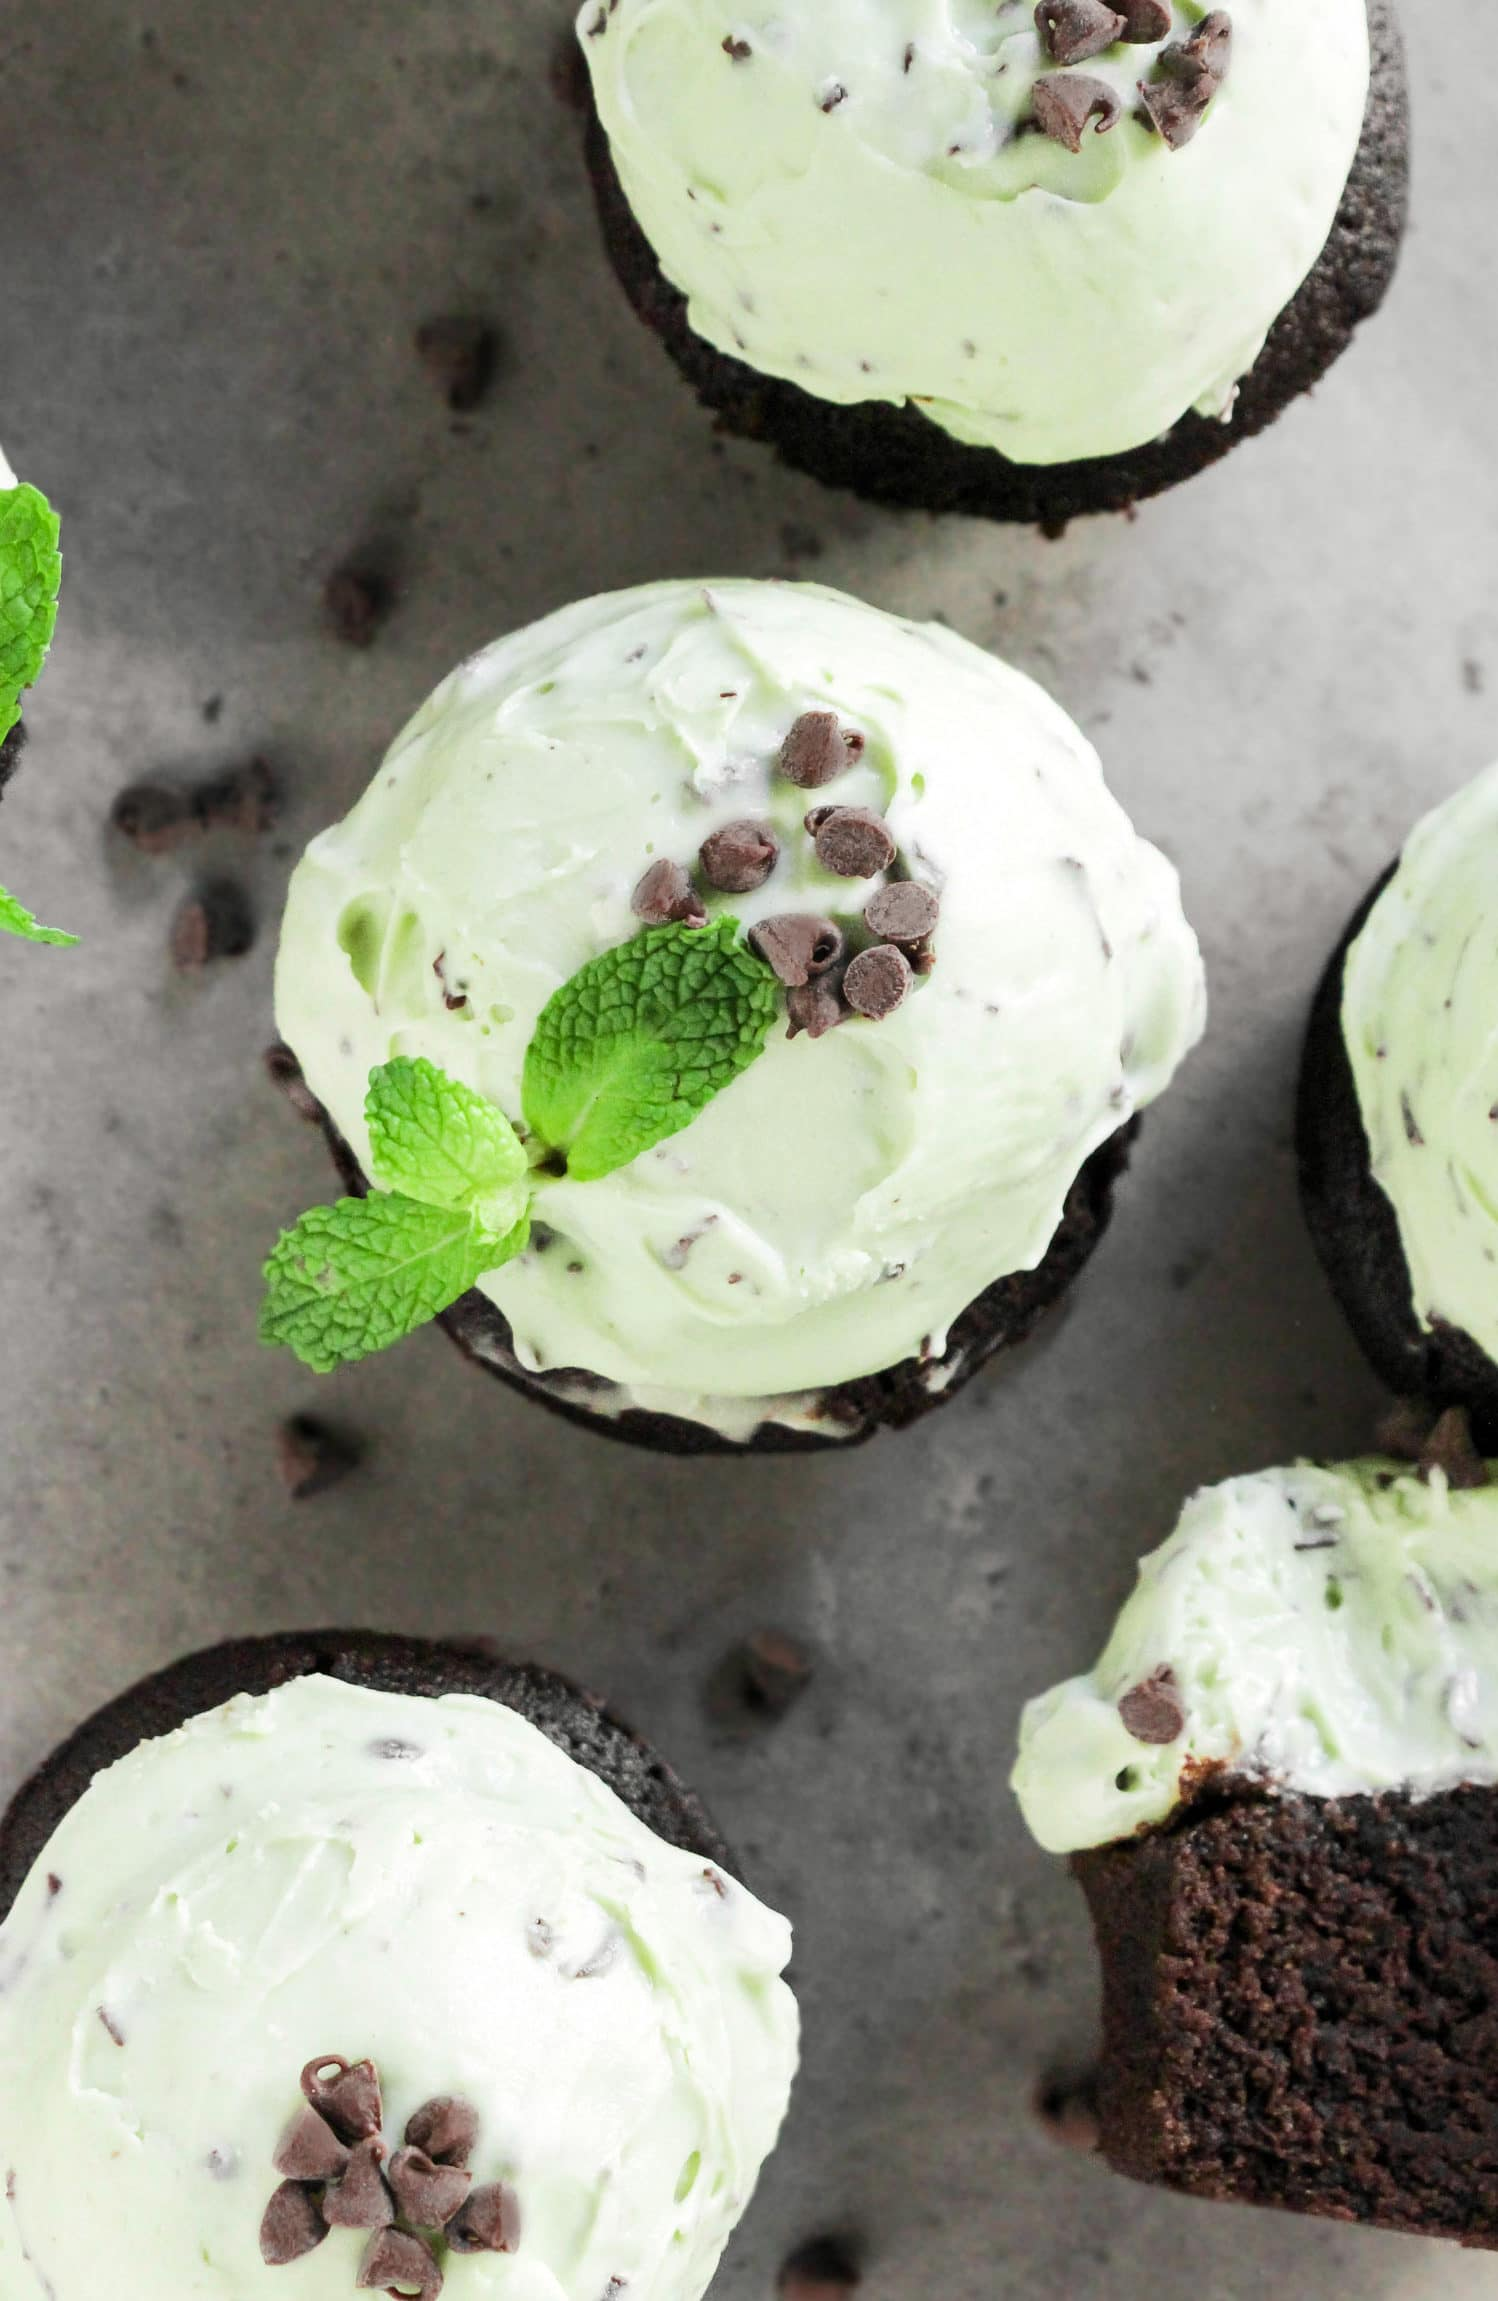 These Mint Chocolate Cupcakes are where mint chocolate chip ice cream and chocolate cupcakes COLLIDE! On top of super soft, moist, and rich chocolate cupcakes, we've got the fluffiest mint frosting studded throughout with chocolate shards. Healthy Dessert Recipes at the Desserts With Benefits Blog (www.DessertsWithBenefits.com)